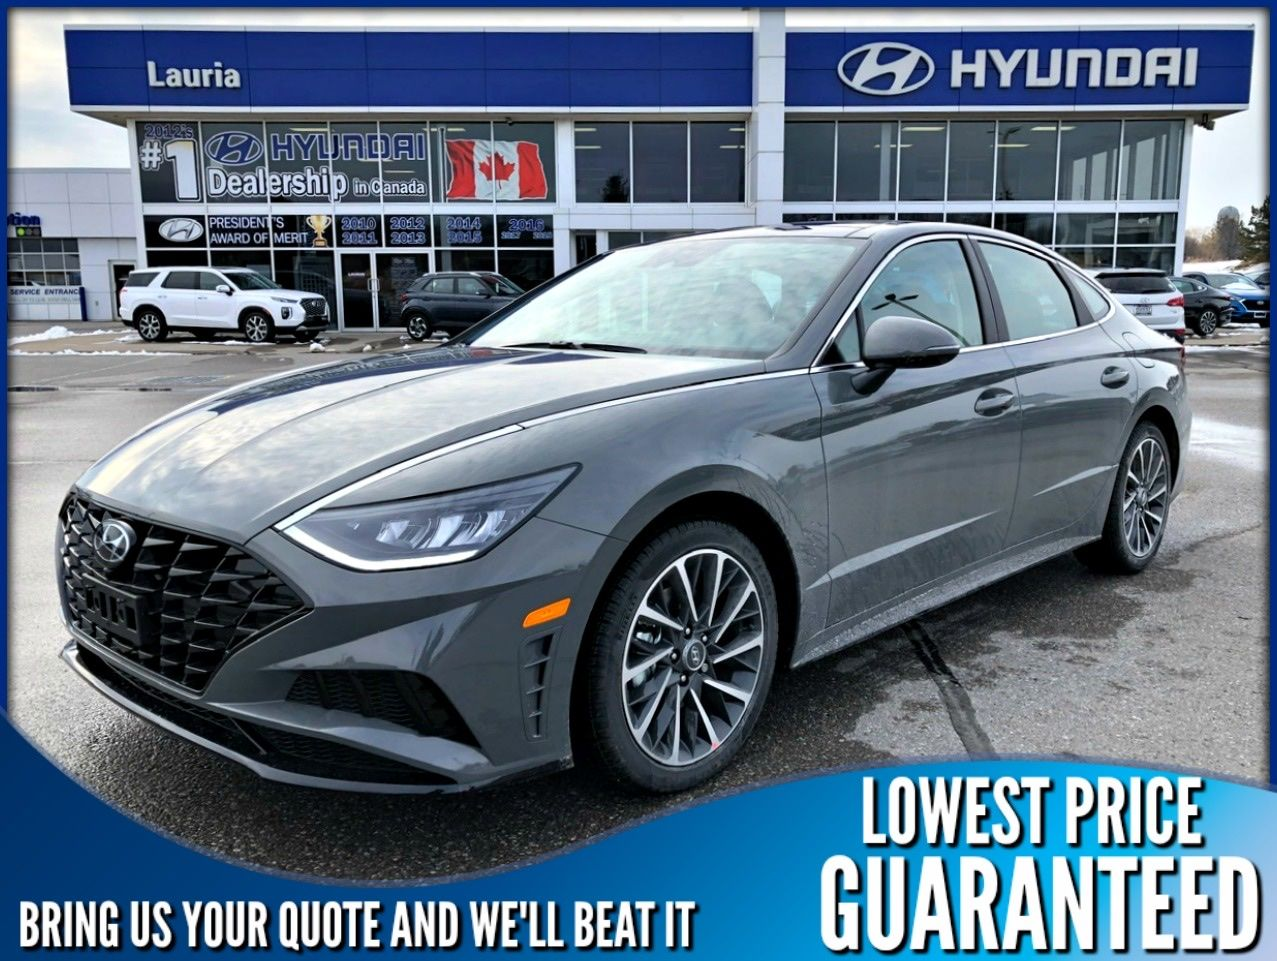 New 2020 Hyundai Sonata 1.6T Luxury Auto